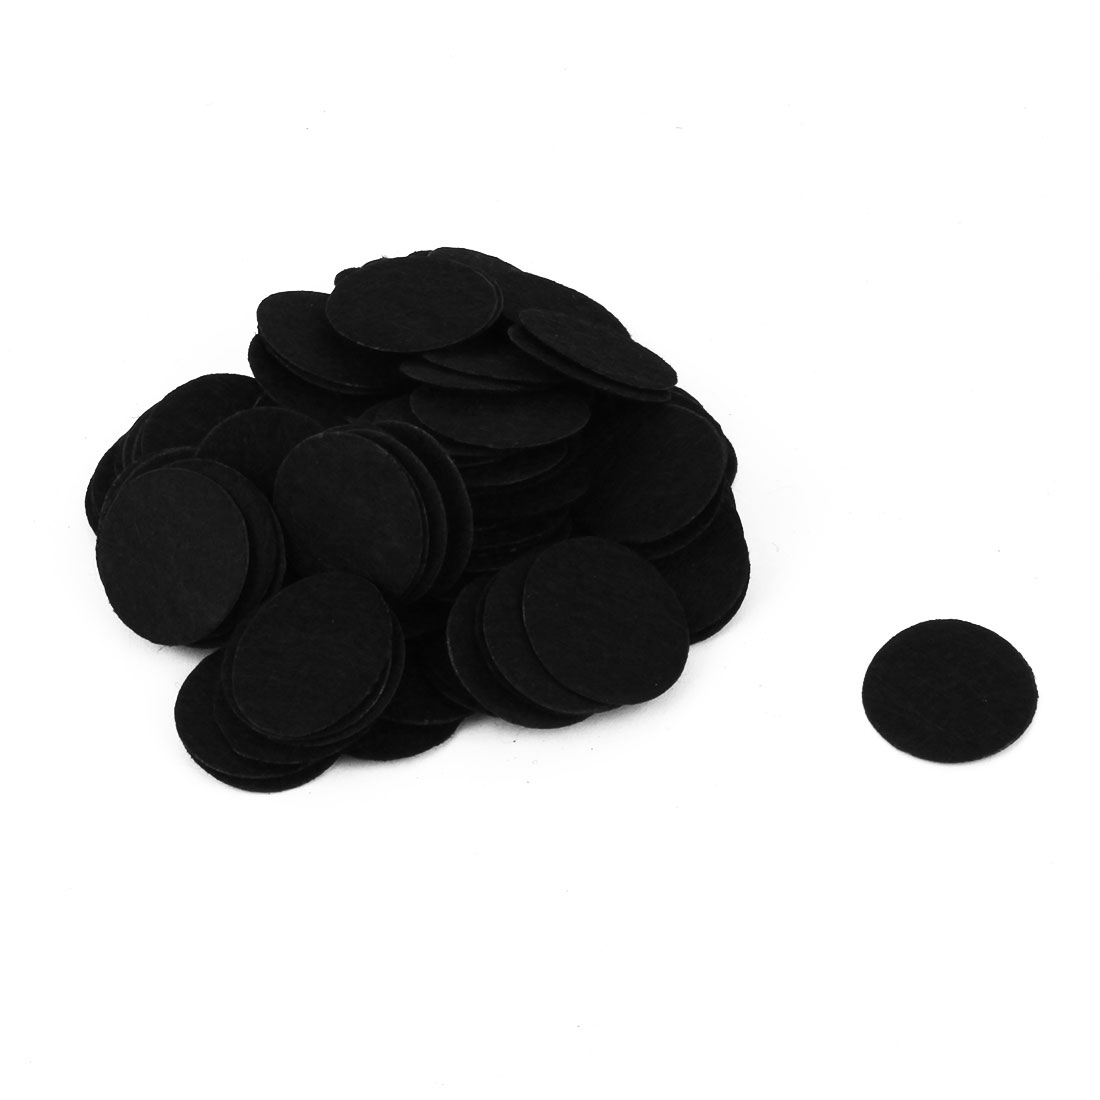 DIY Handcraft Accessories Round Circle Pad Patches Black 25mm Dia 100pcs